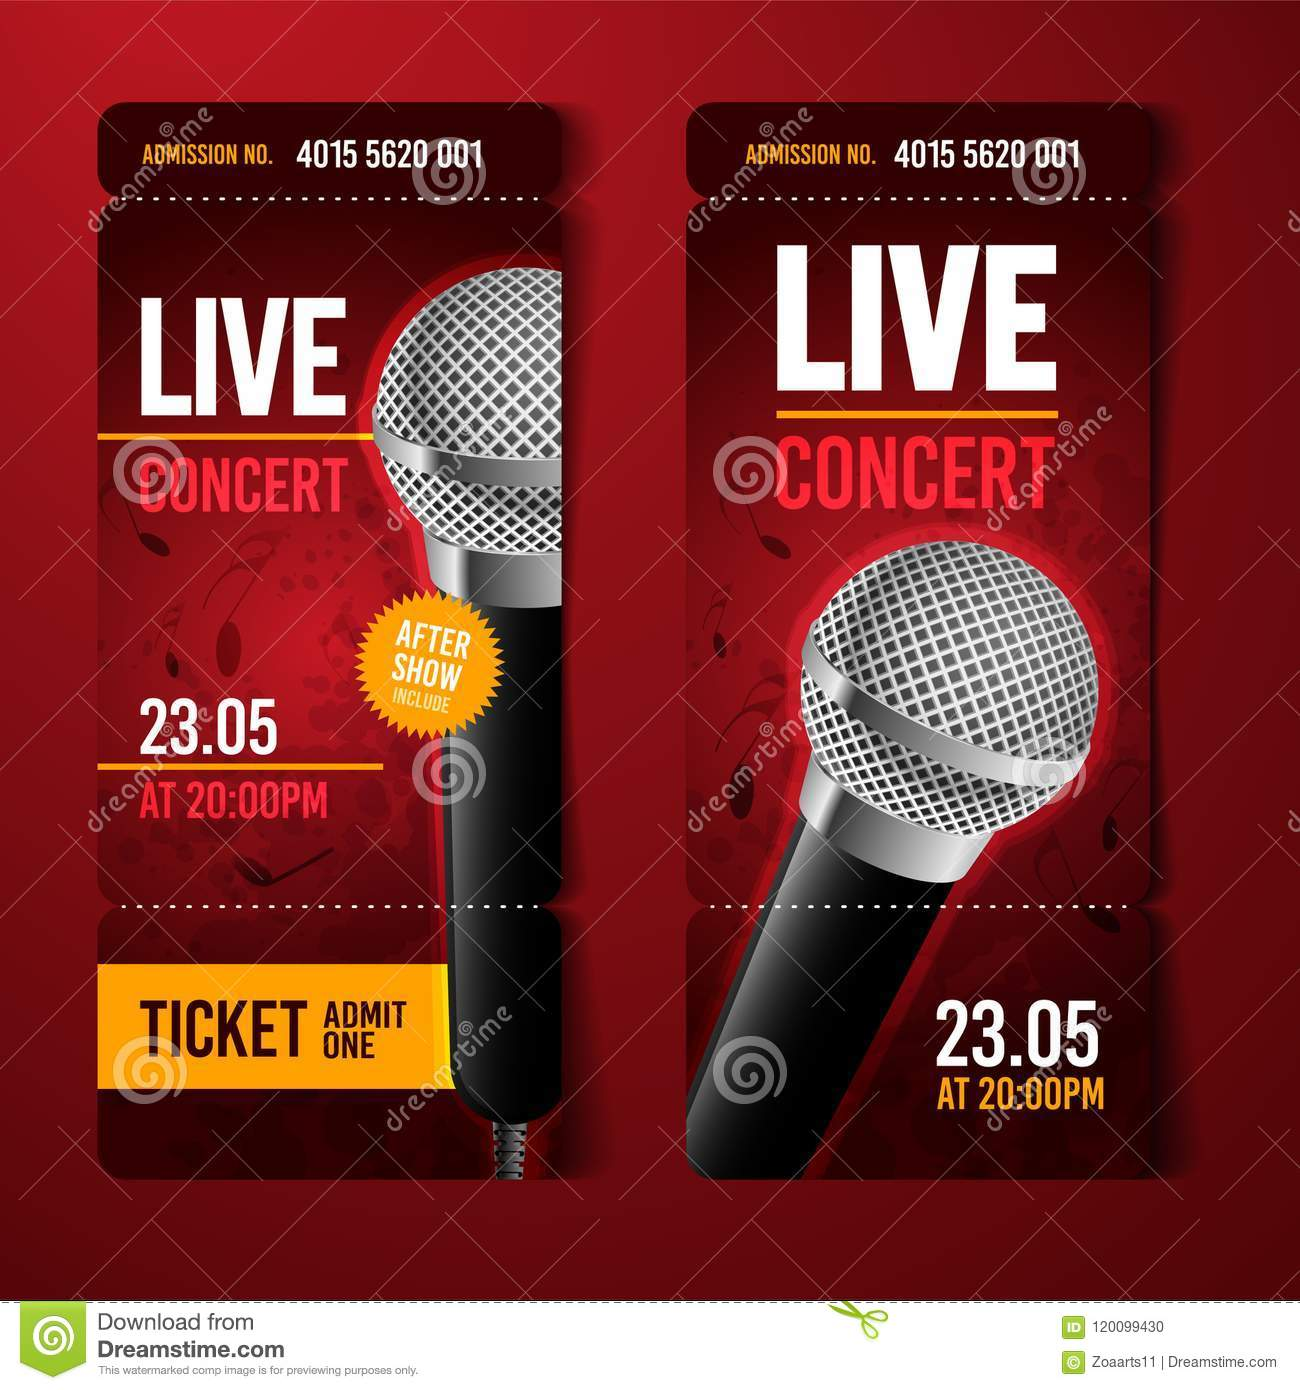 Stand up comedy event video post template | postermywall.